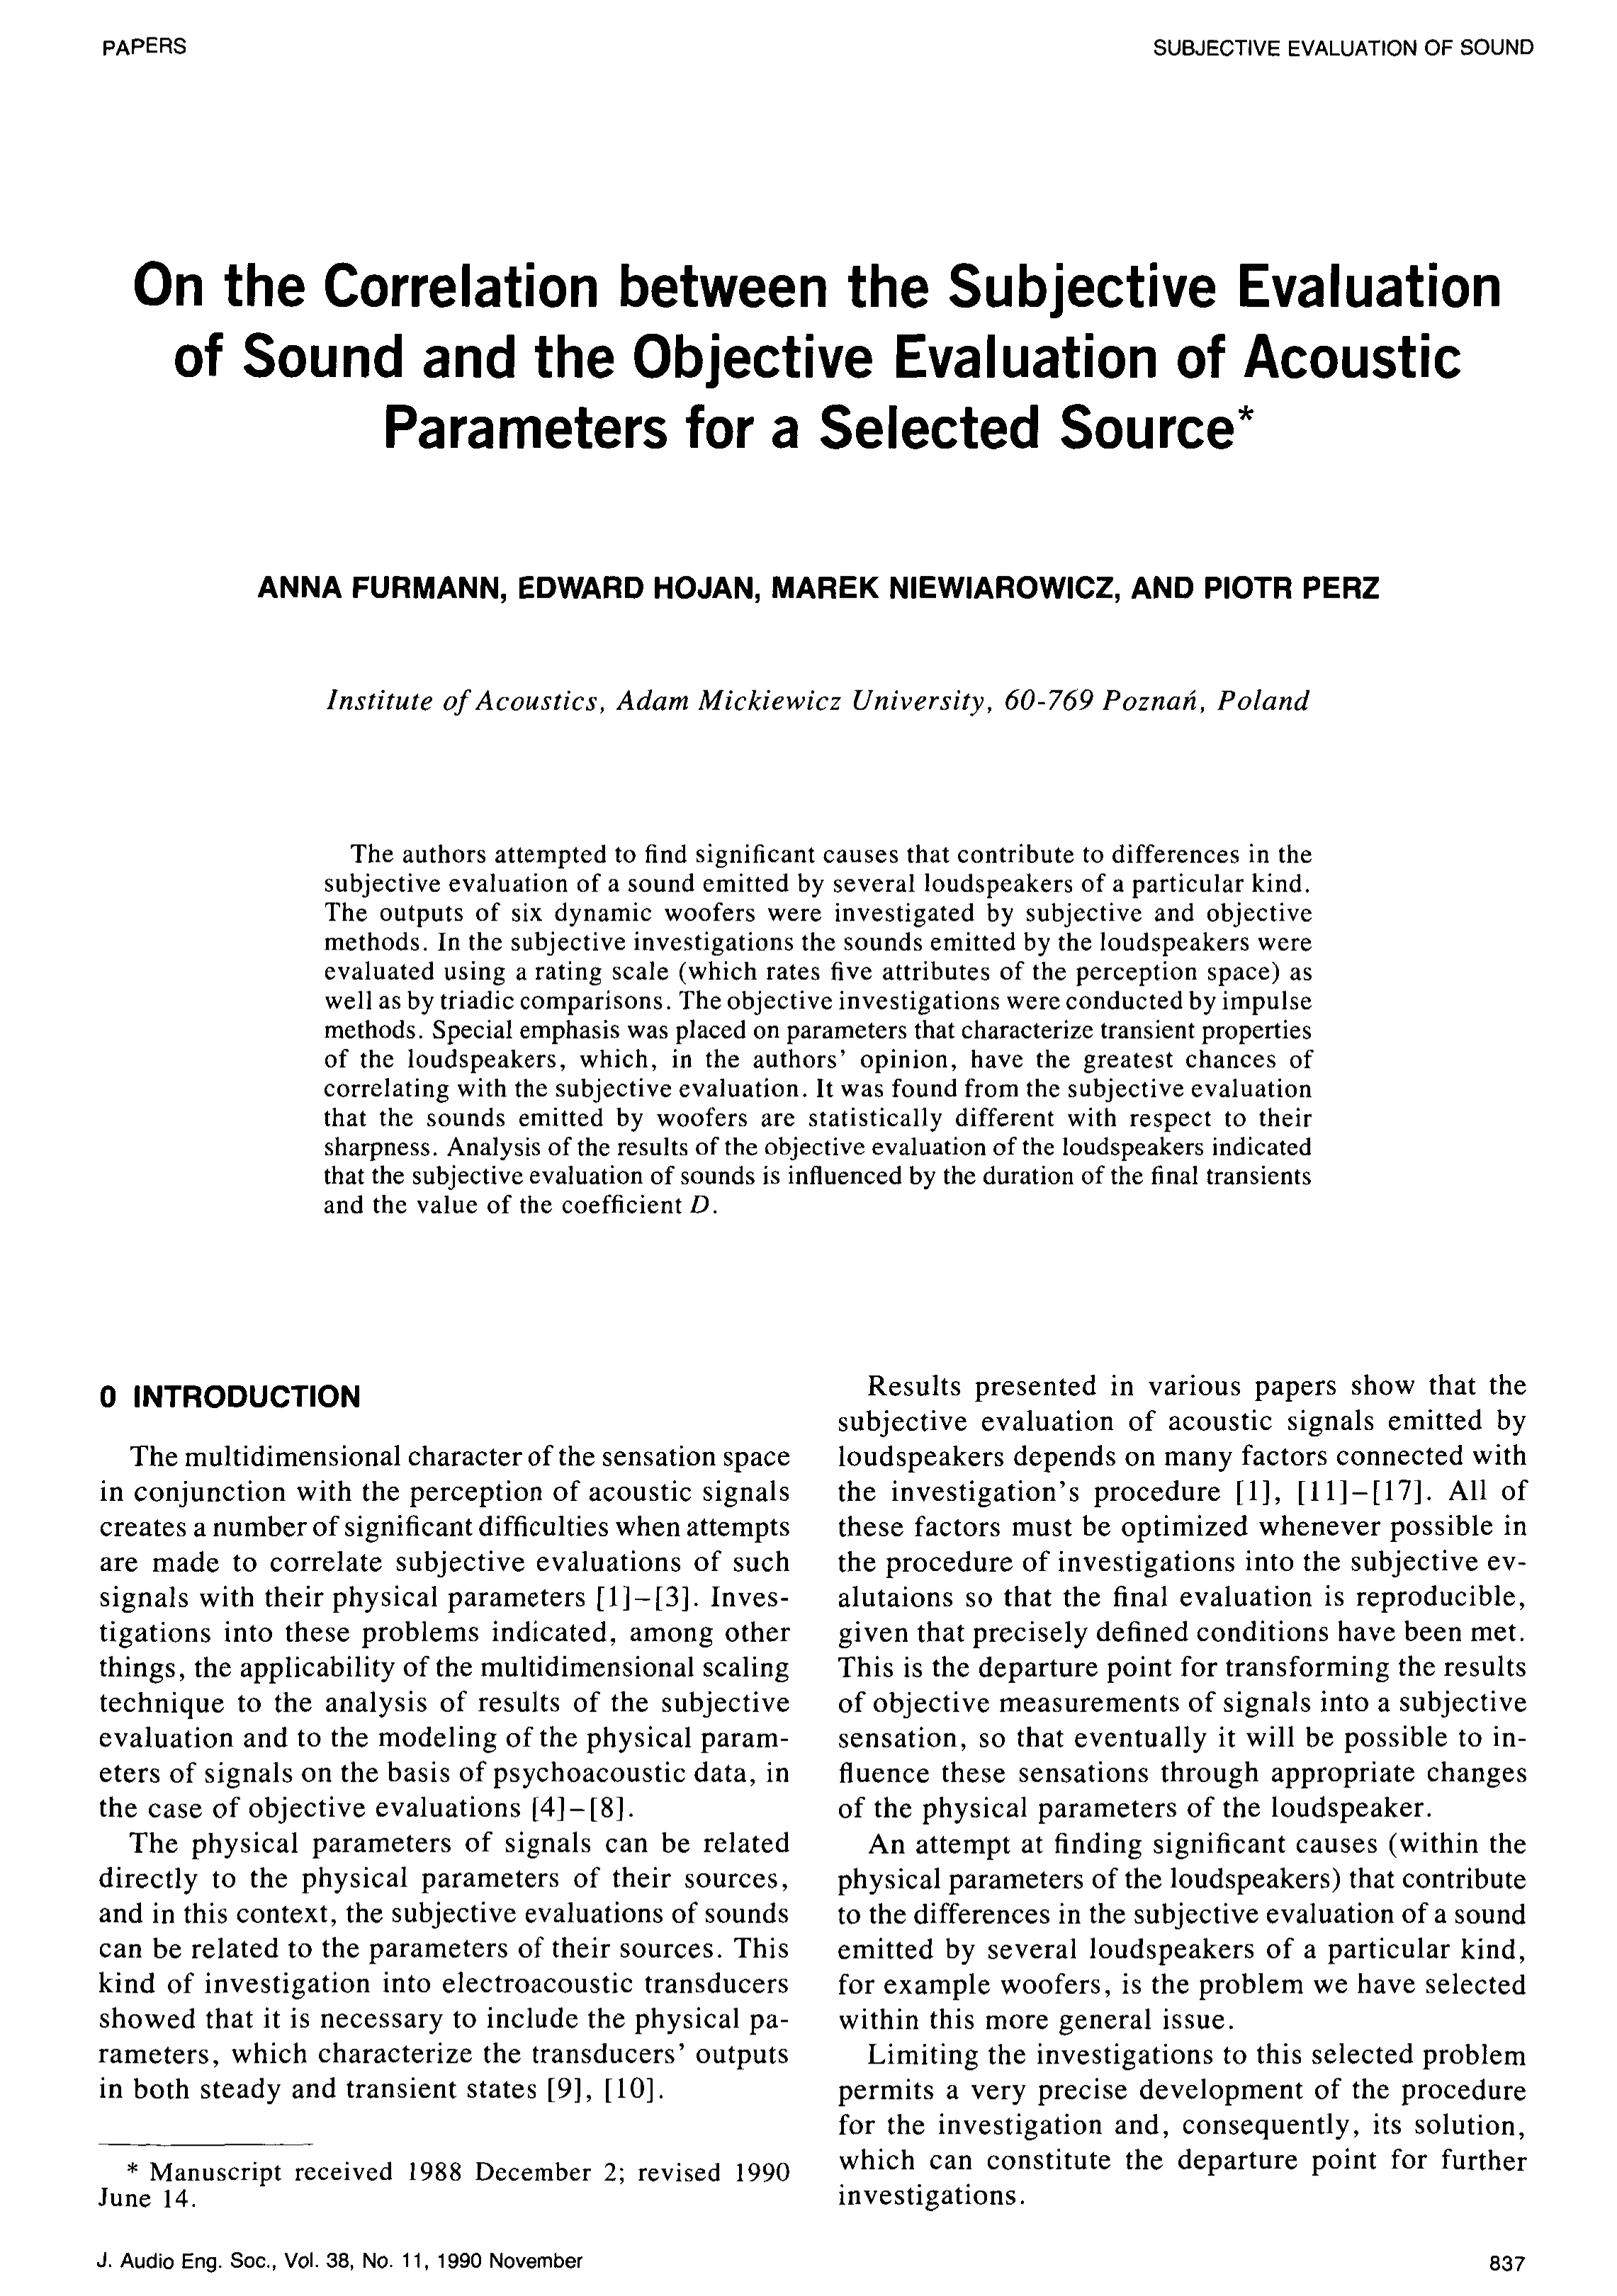 Aes E Library On The Correlation Between The Subjective Evaluation